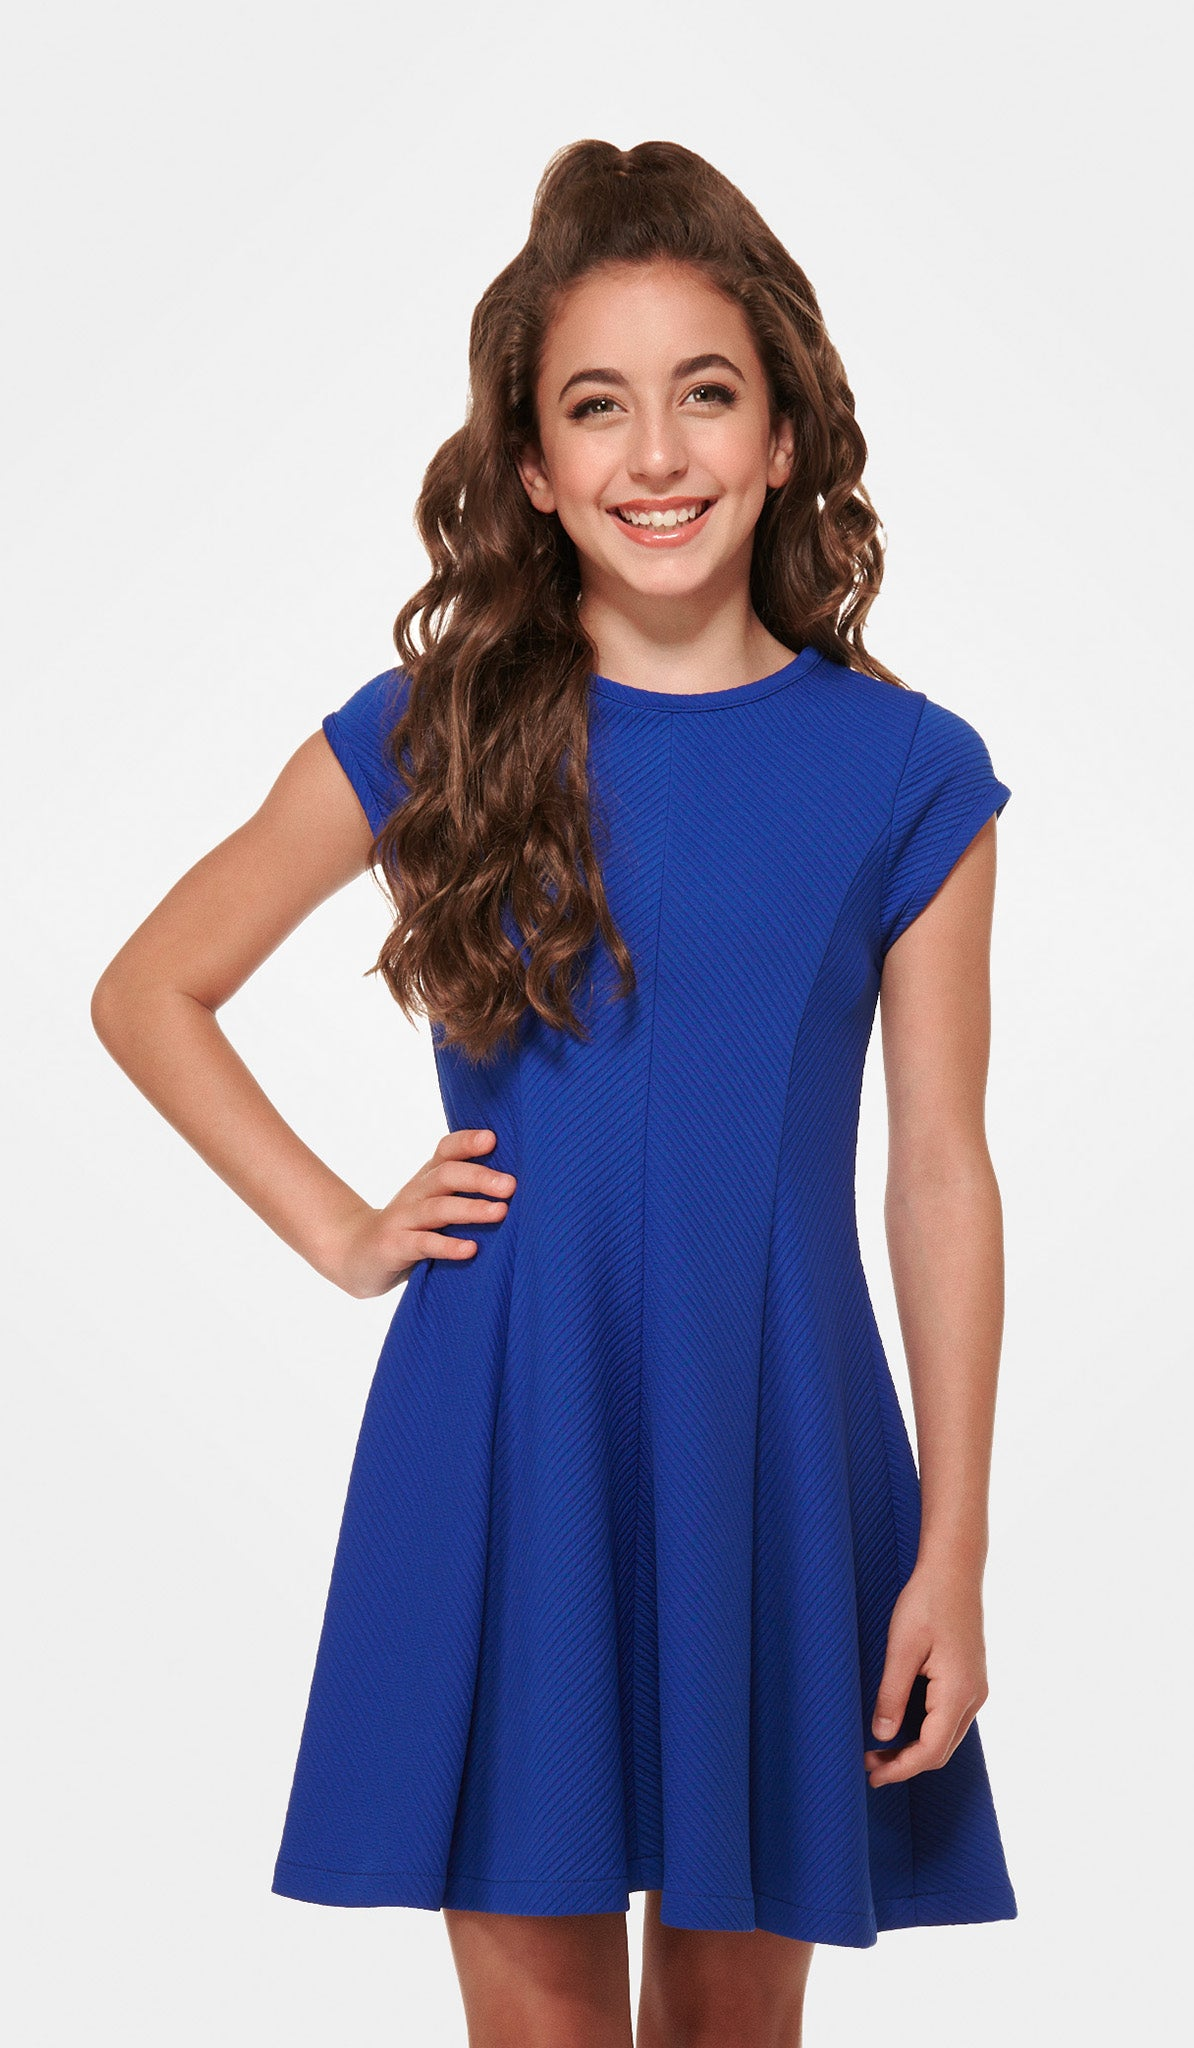 THE ALLIE DRESS - Sallymiller.com - [variant title] - | Event & Party Dresses for Tween Girls & Juniors | Weddings Dresses, Bat Mitzvah Dresses, Sweet Sixteen Dresses, Graduation Dresses, Birthday Party Dresses, Bar Mitzvah Dresses, Cotillion Dresses